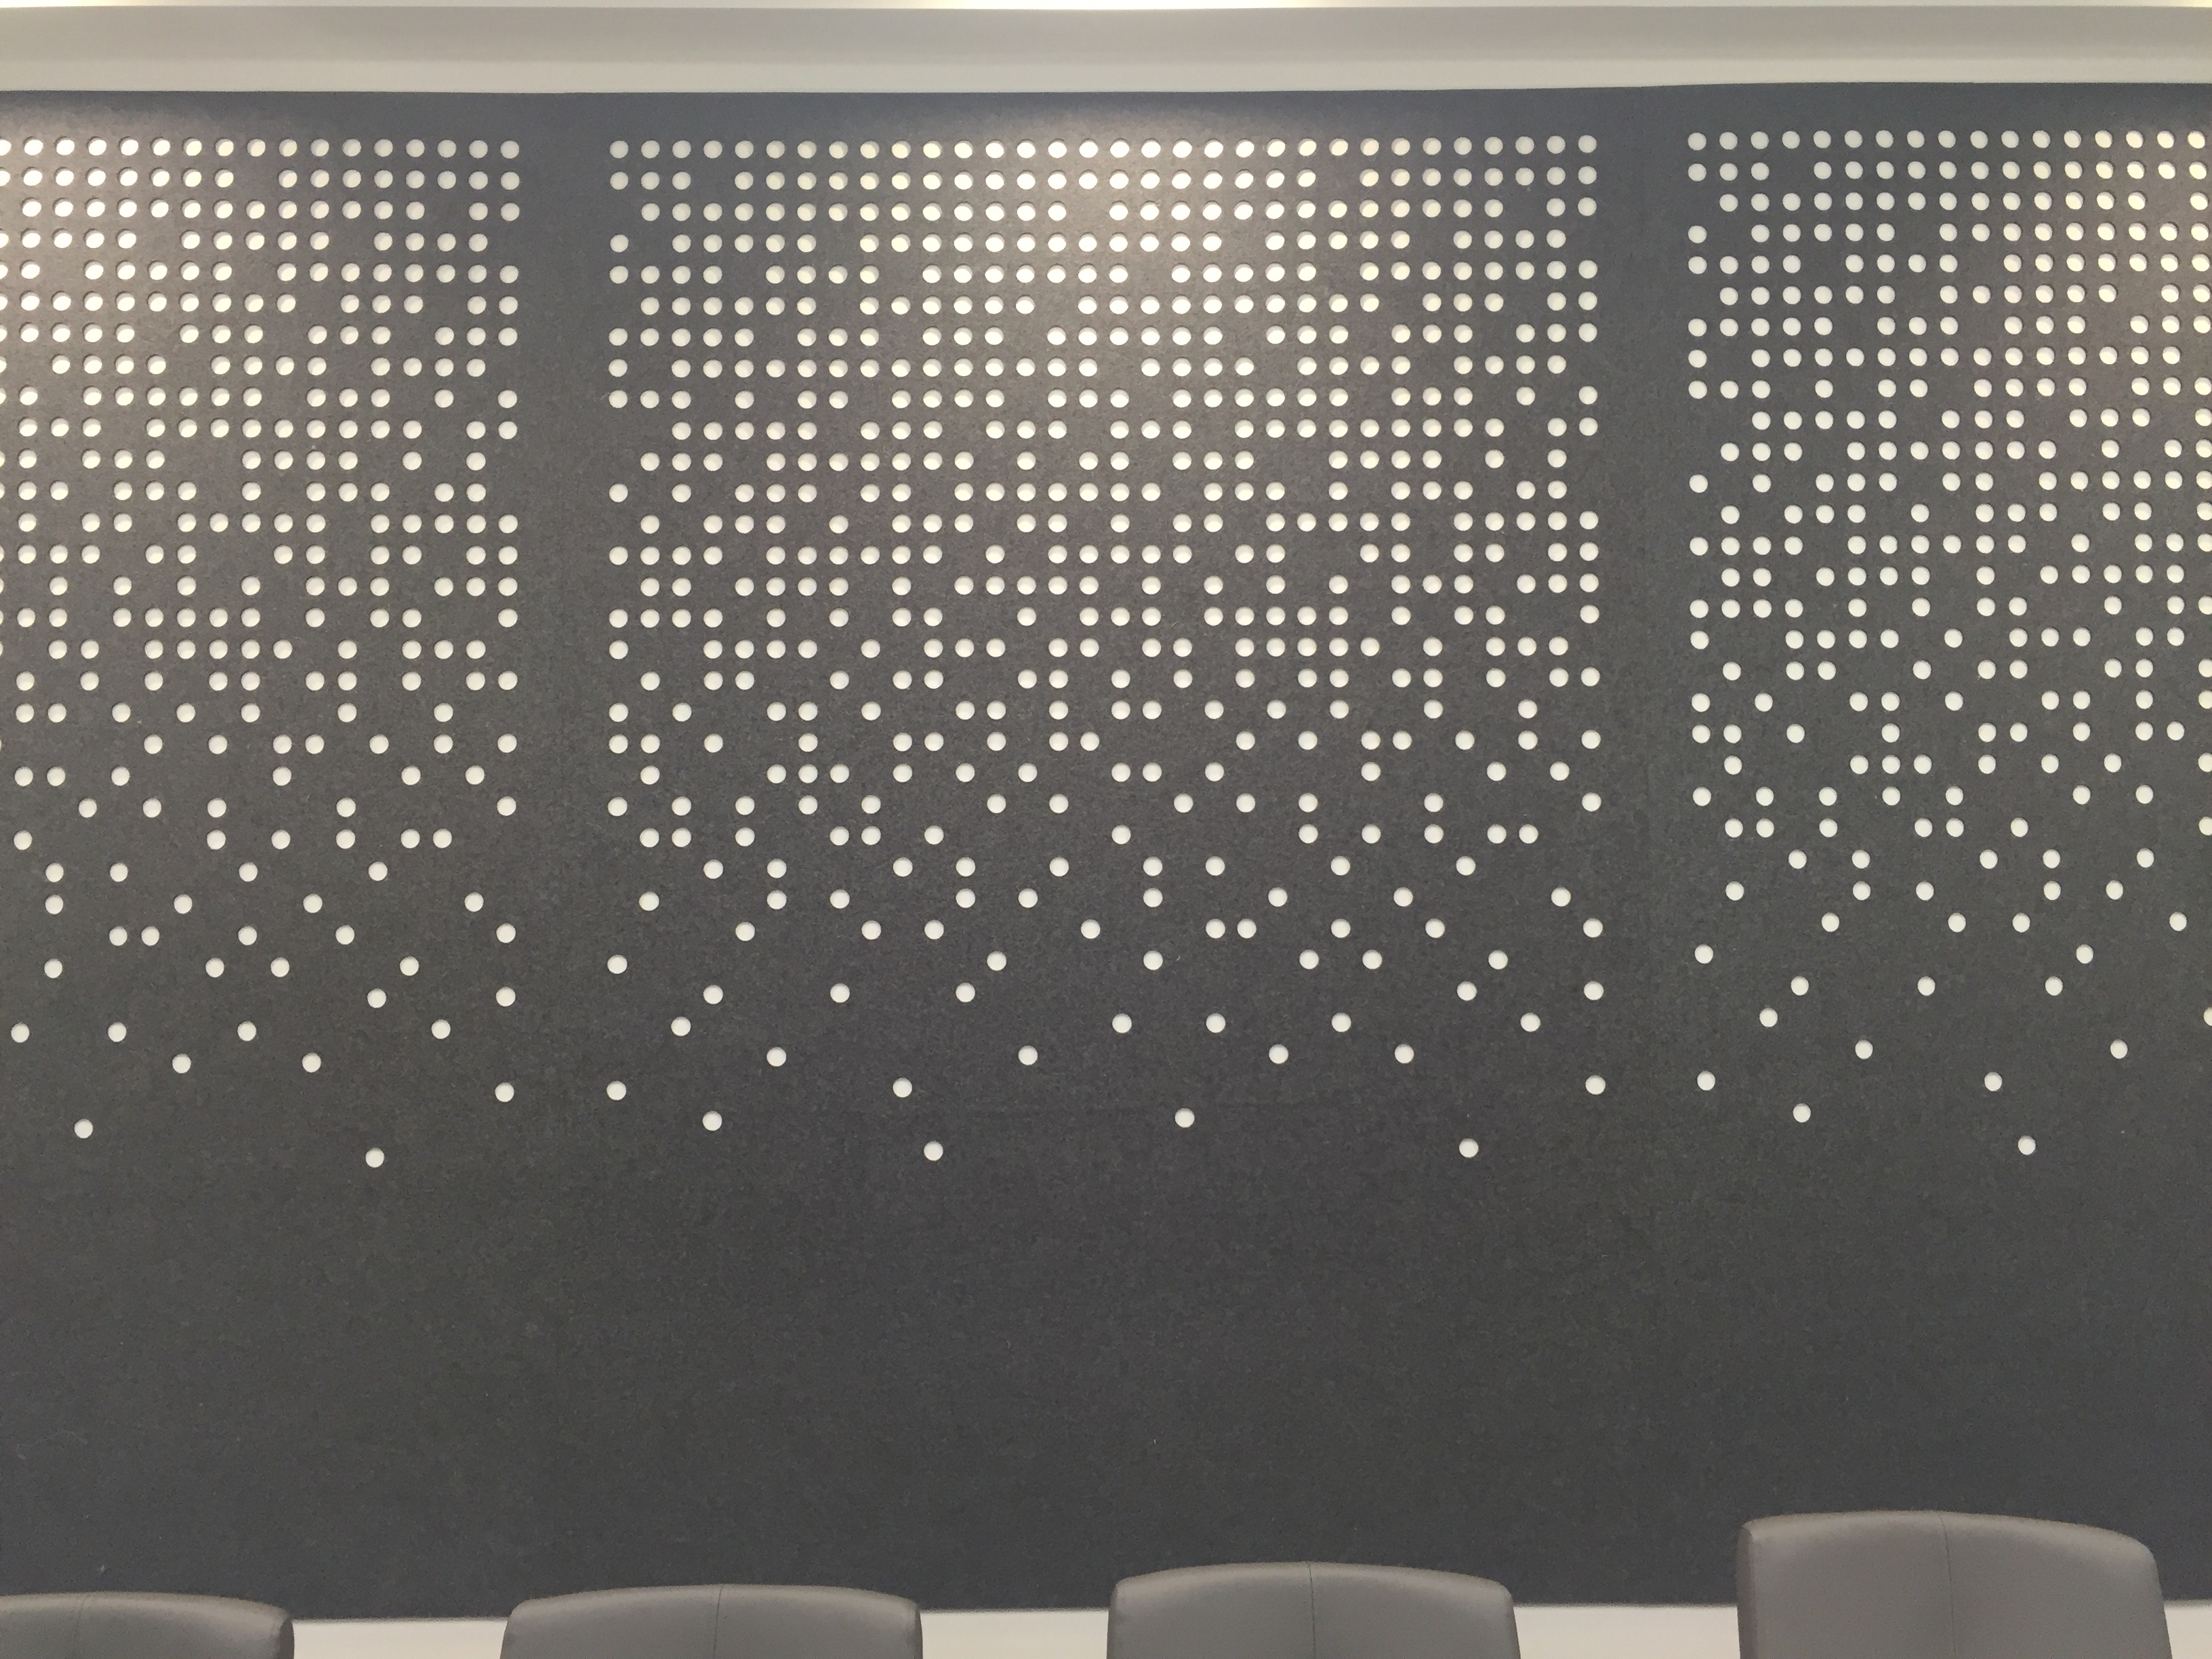 hightower conference room wall